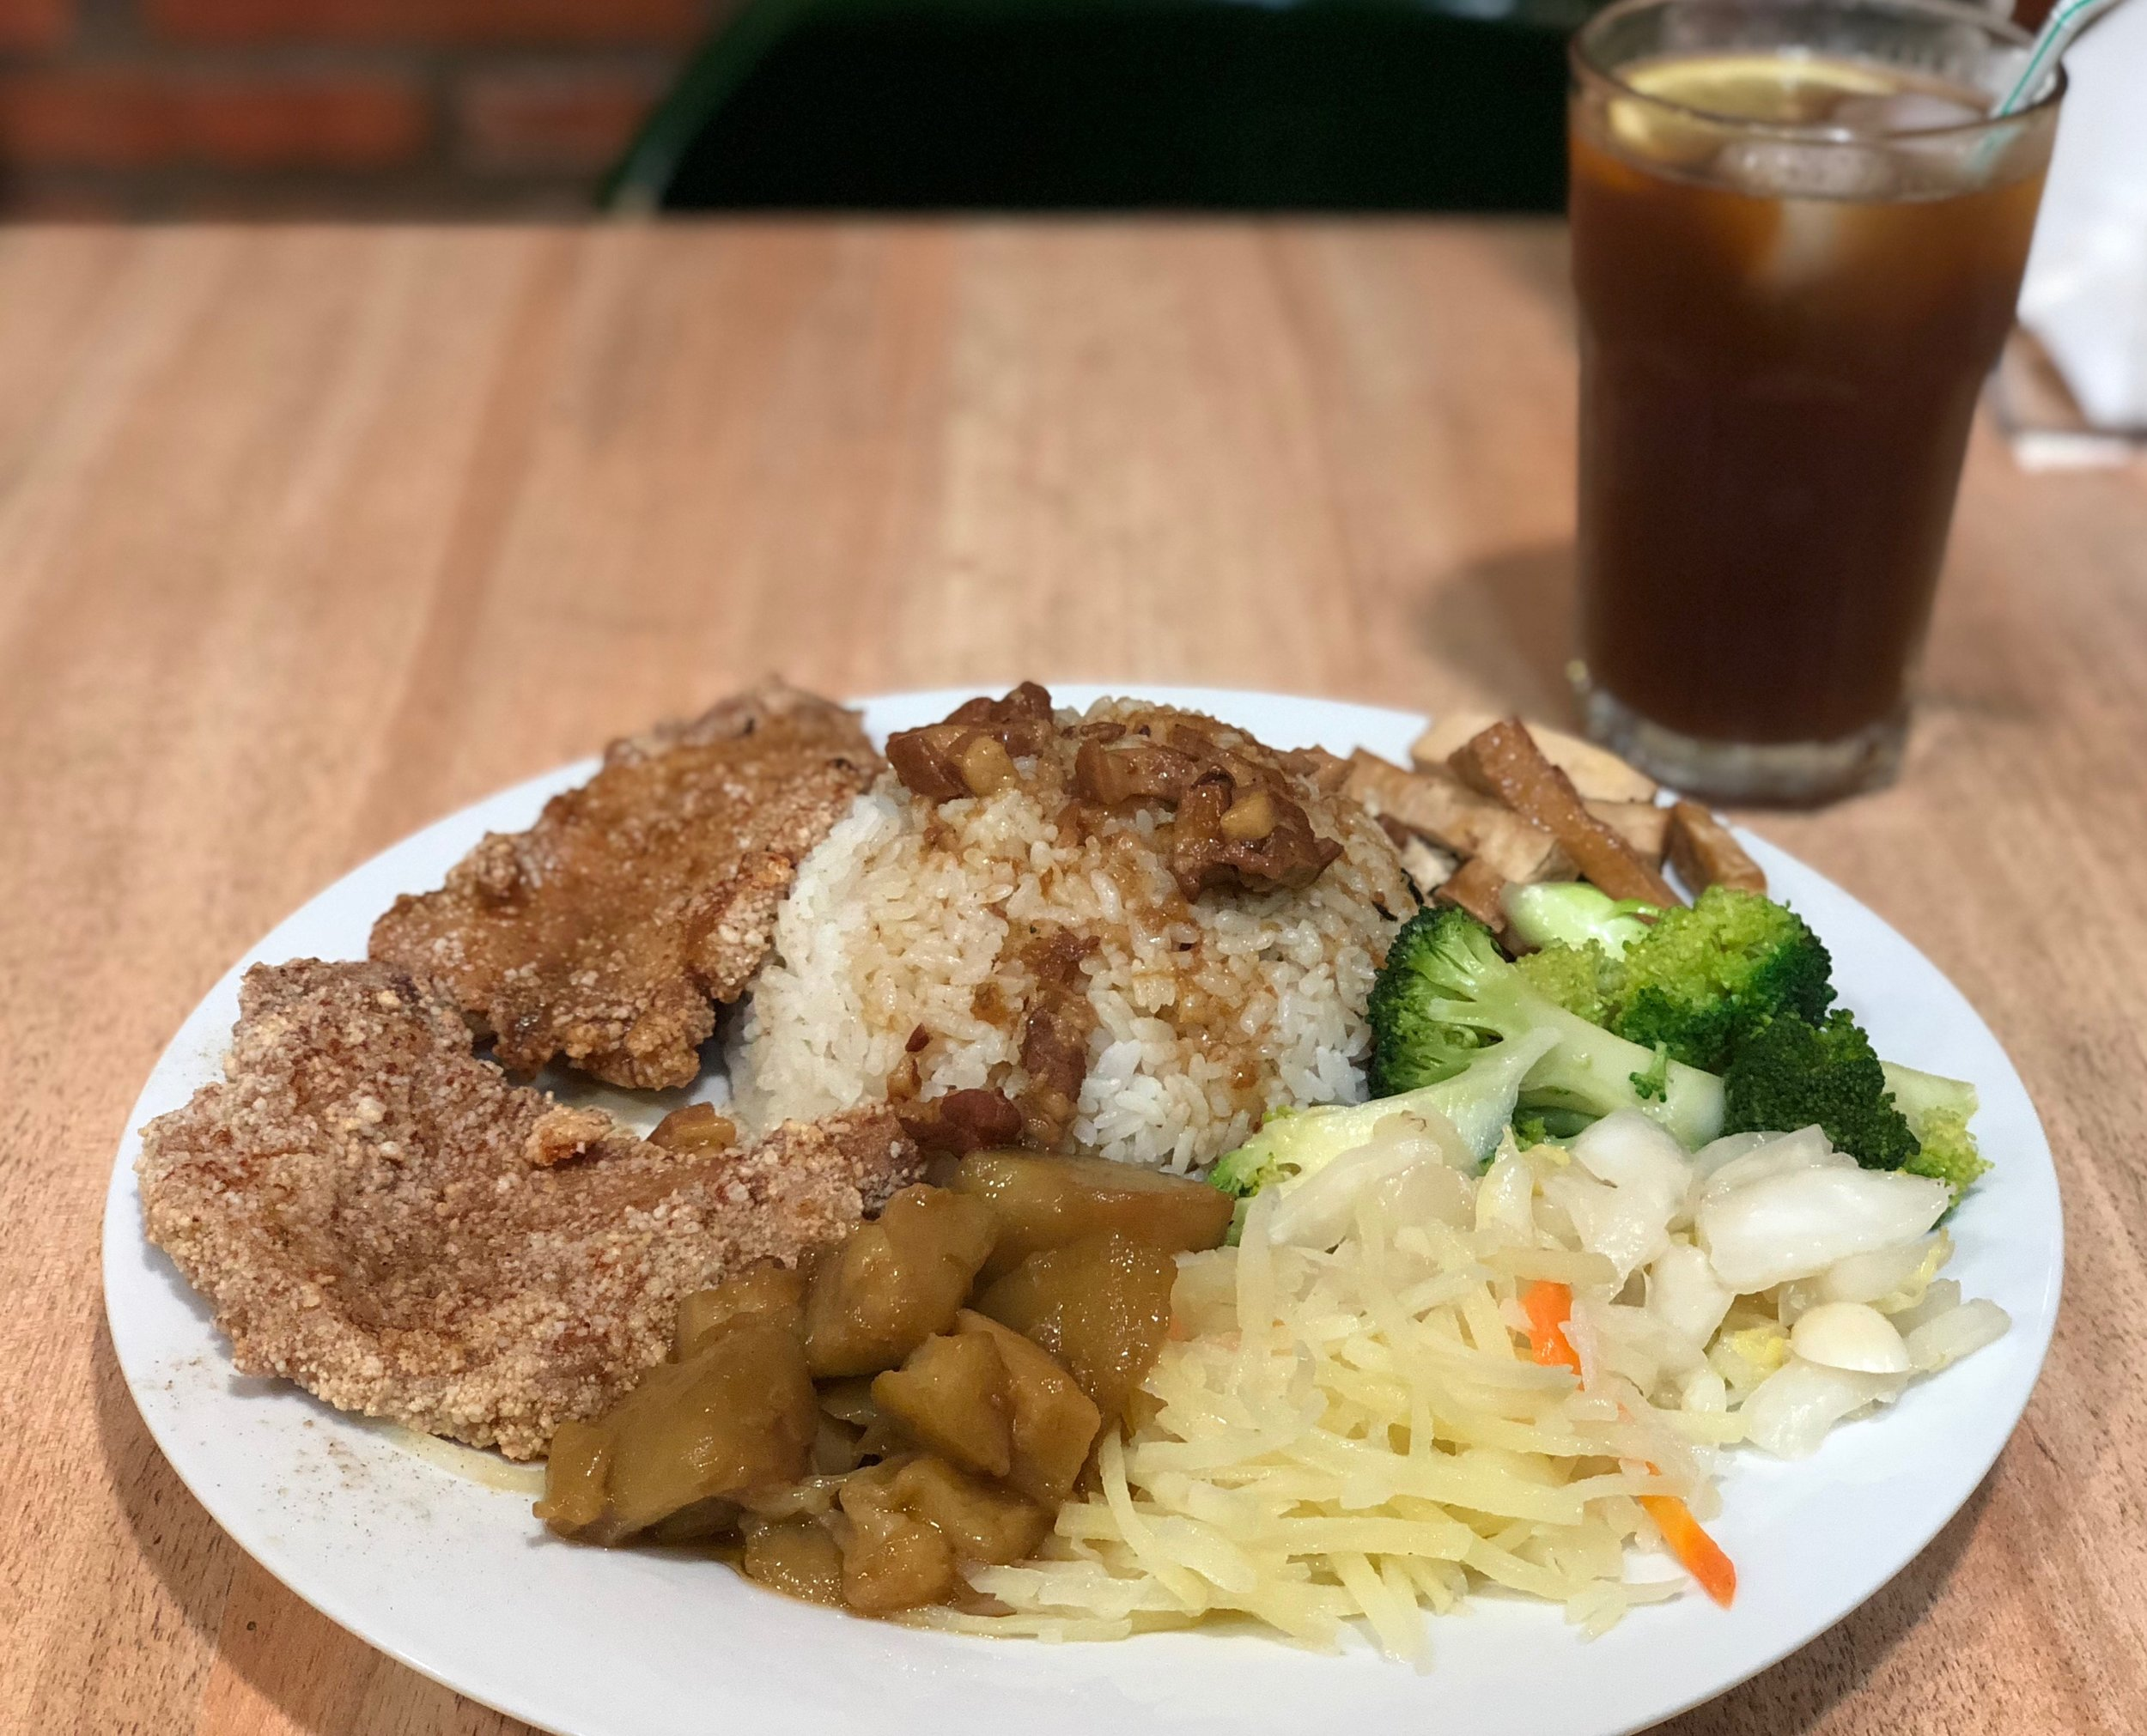 Taiwanese fried pork chop with lurou fan (雙味豬排便當, Bento de lomo estilo taiwanés (frito) con luróu), with homemade lemon iced tea in background